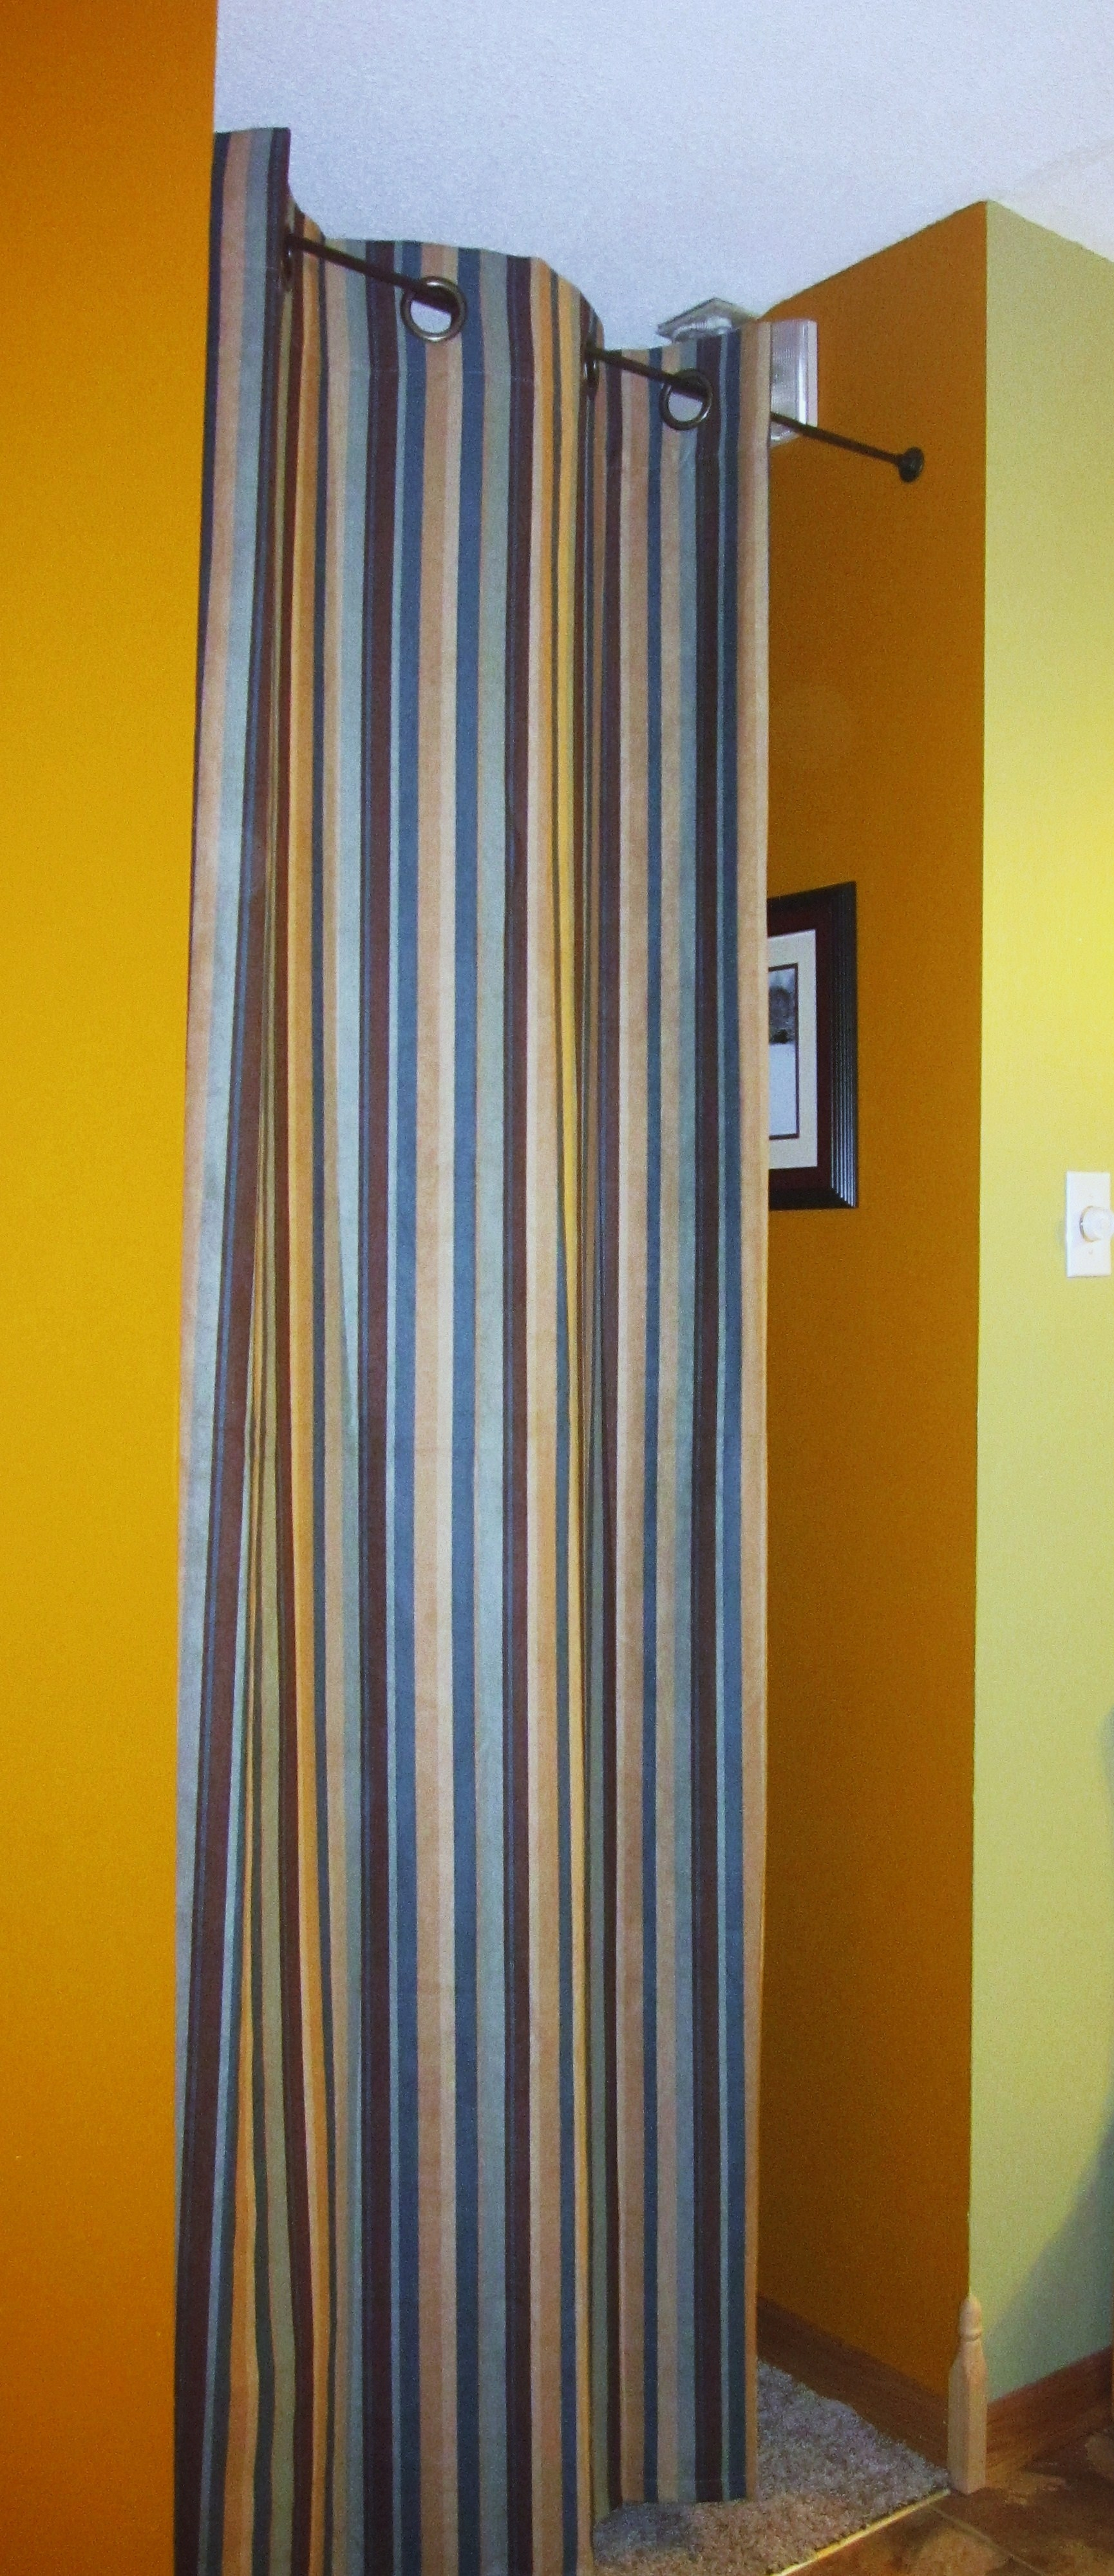 High Small Stripped Room Divider Ideas With Curtain Flanked With With Regard To Room Curtain Dividers (View 23 of 25)